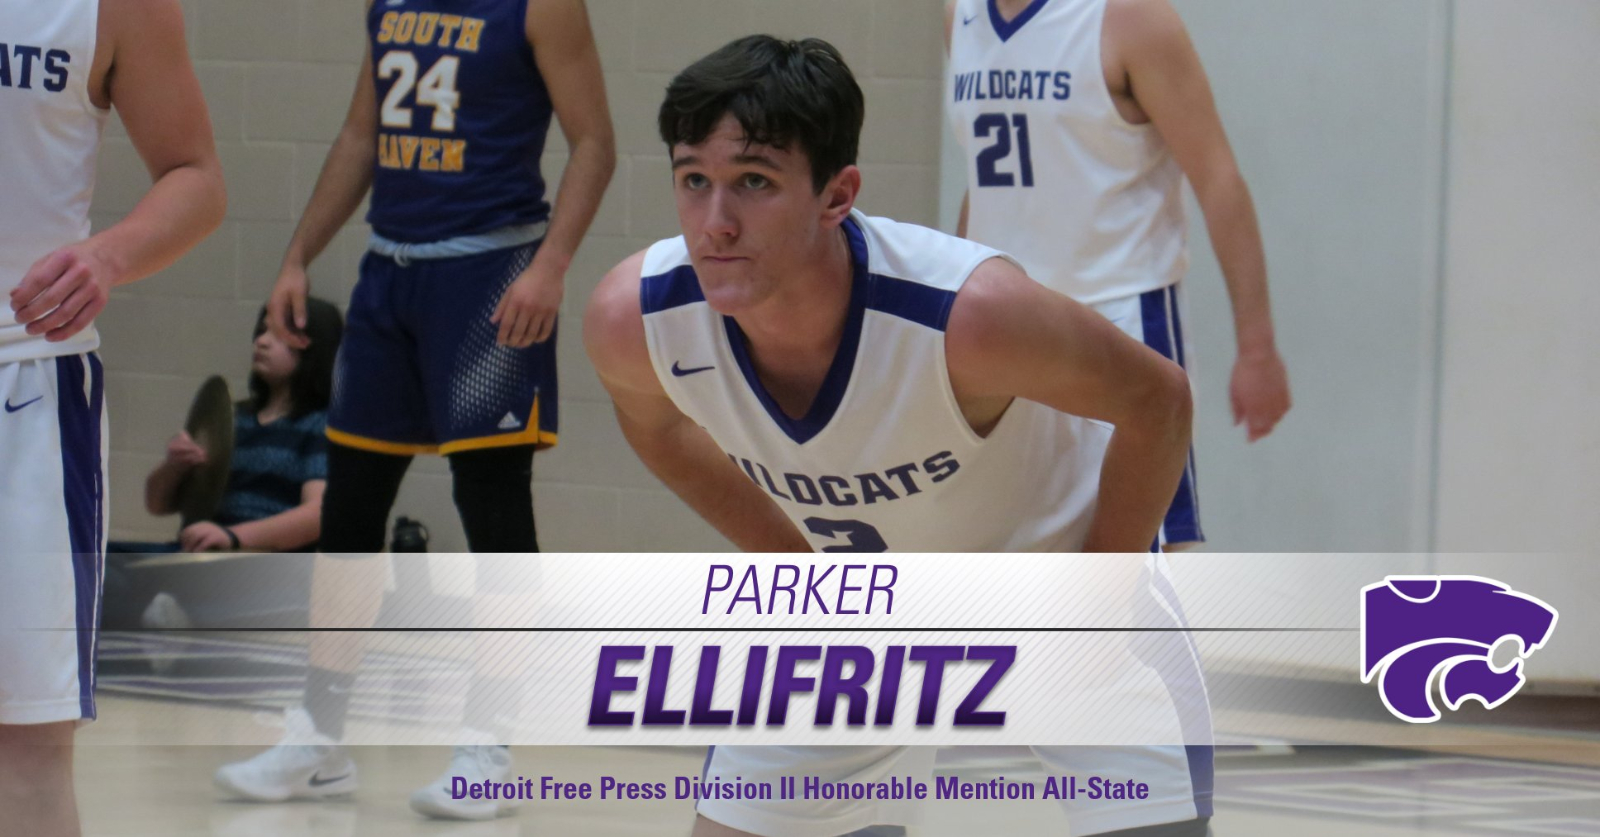 Boys Basketball: Ellifritz named Honorable Mention All-State